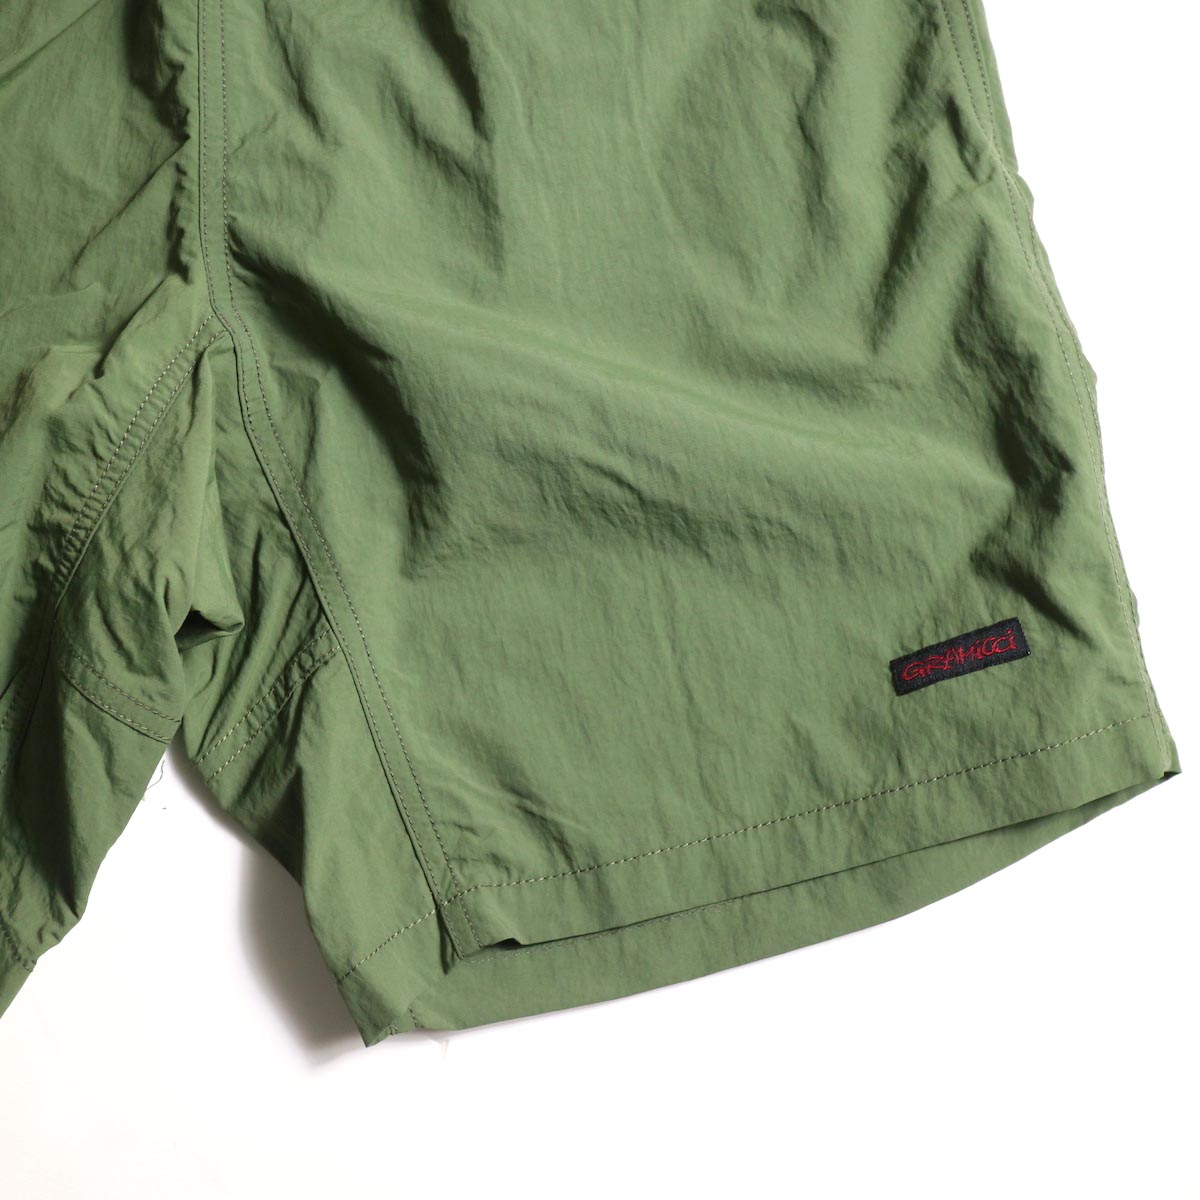 GRAMICCI / Shell Packable Shorts (Olive)左裾ビスネーム